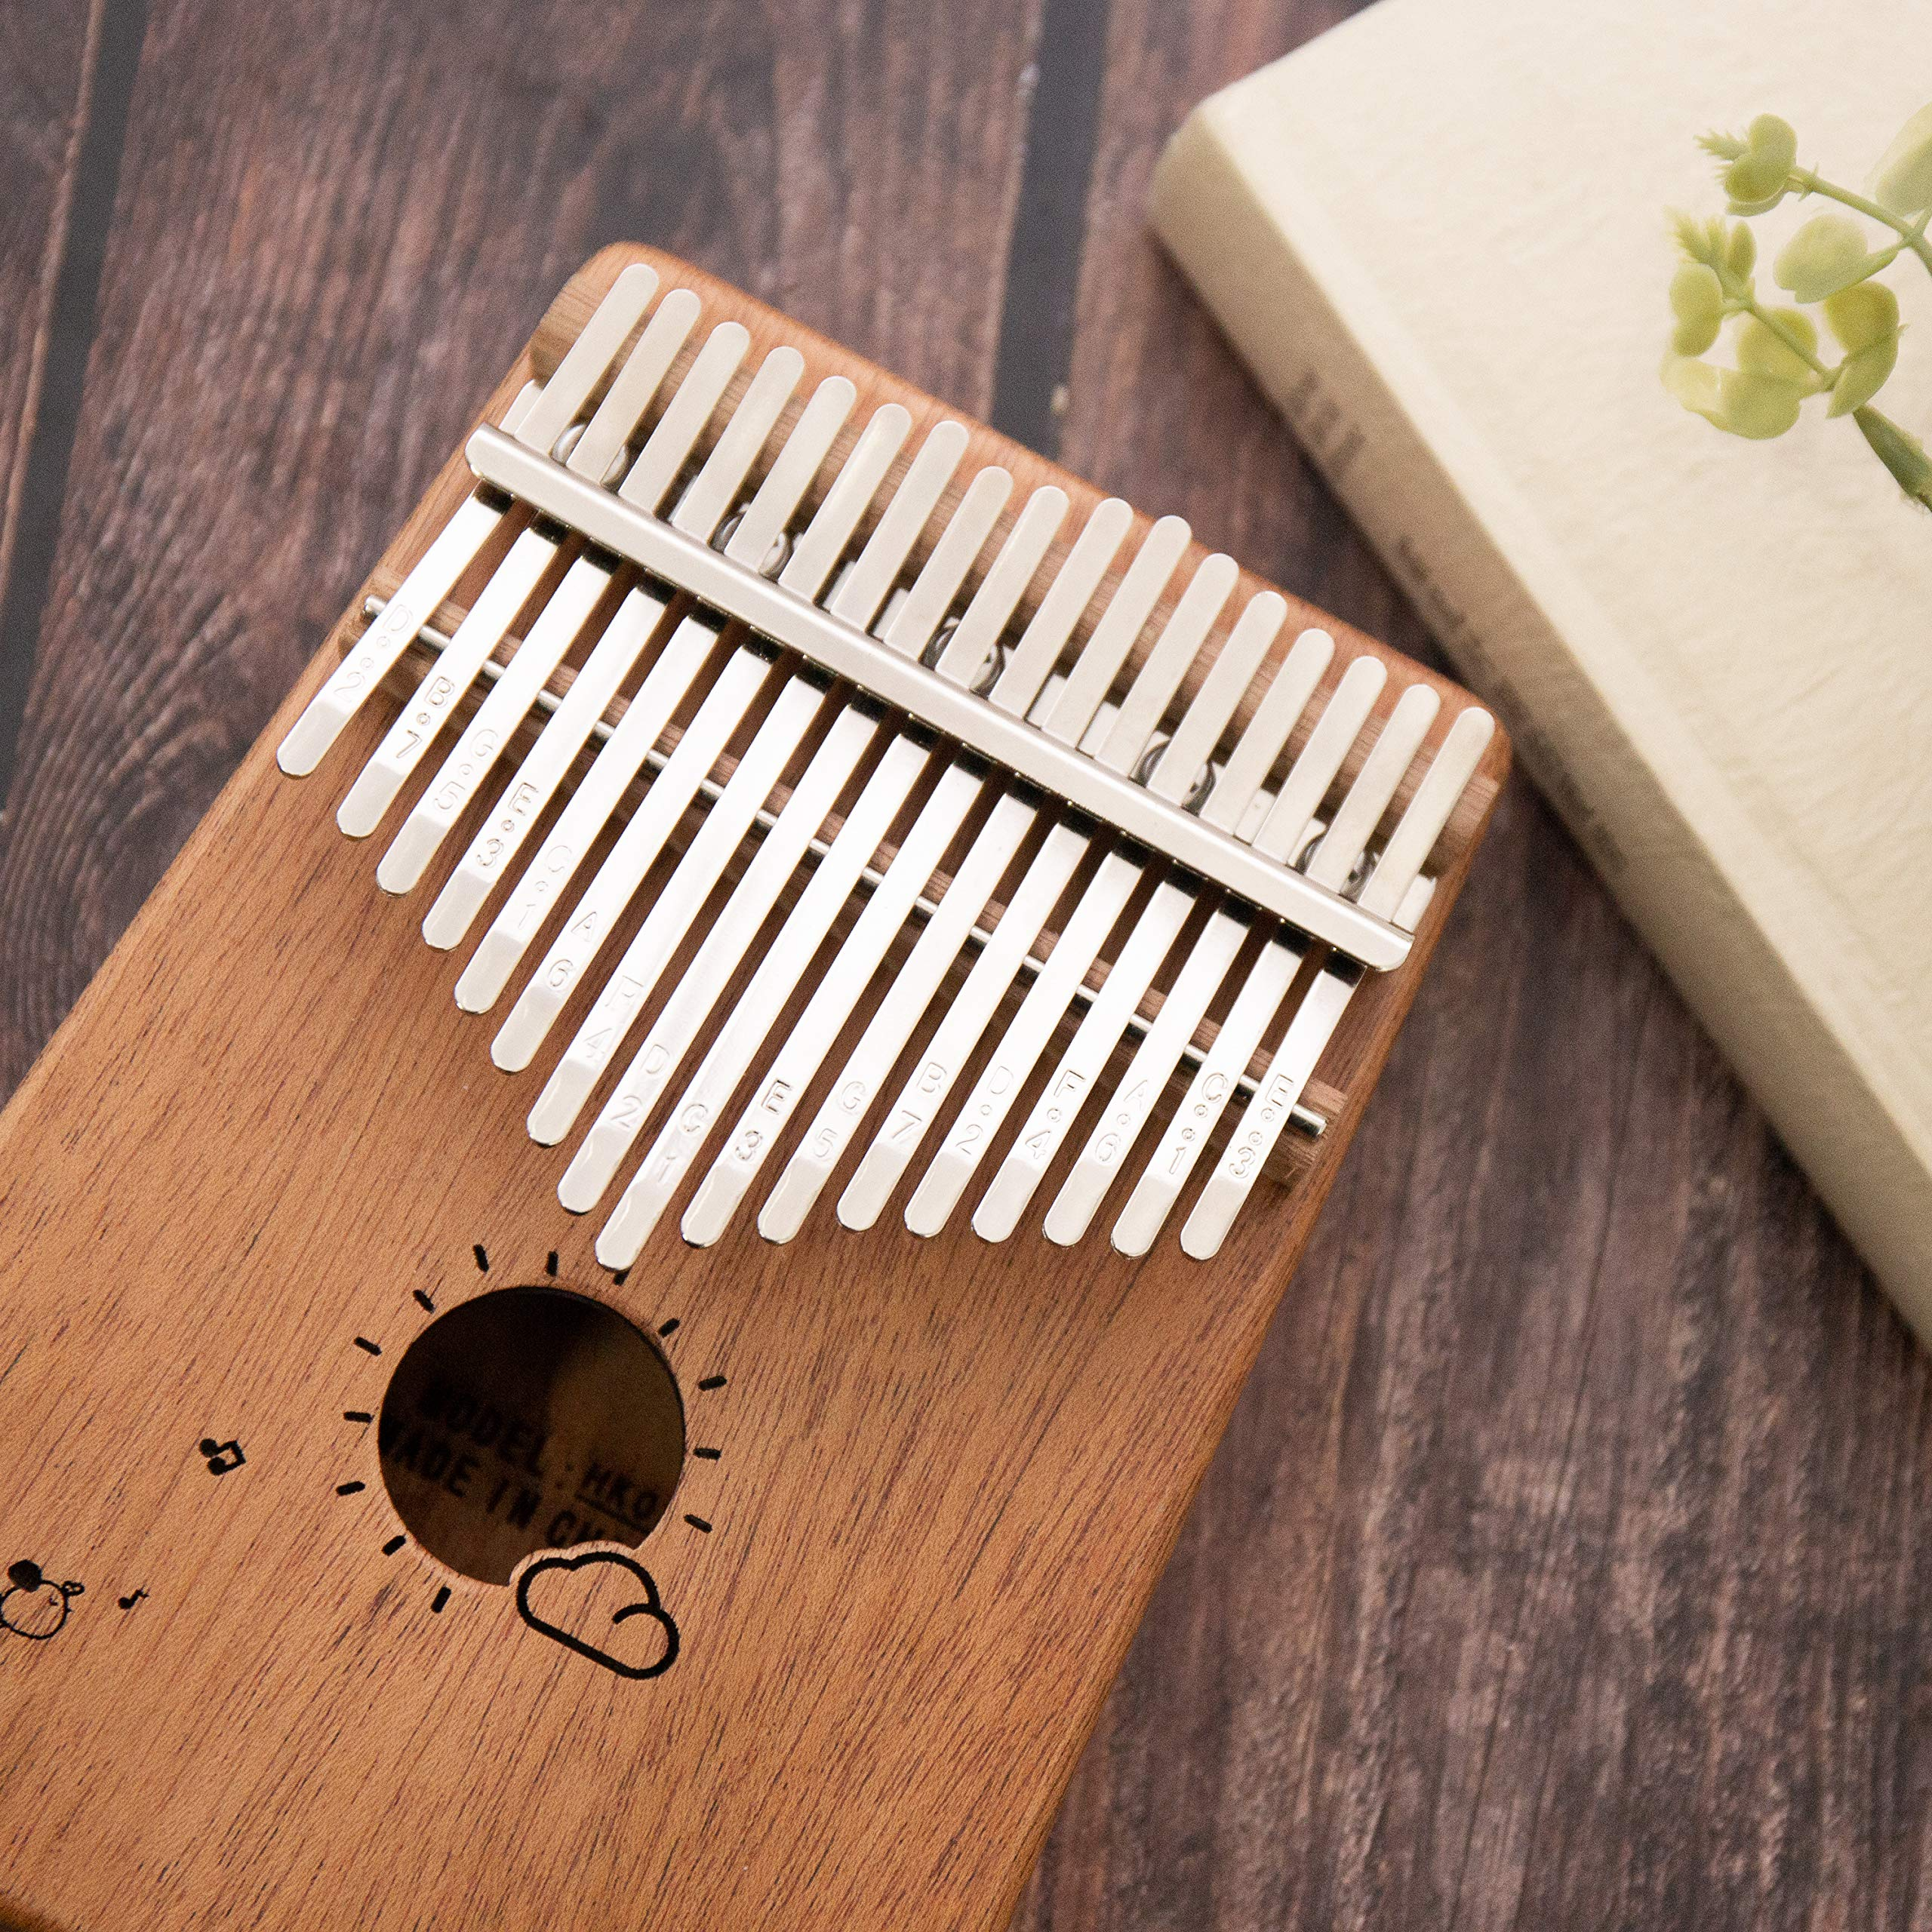 Kalimba 17 Keys Thumb Finger Piano - Mbira - Solid Mahogany and Portable with Carrying Bag and Instructions by GSM Brands (Image #2)